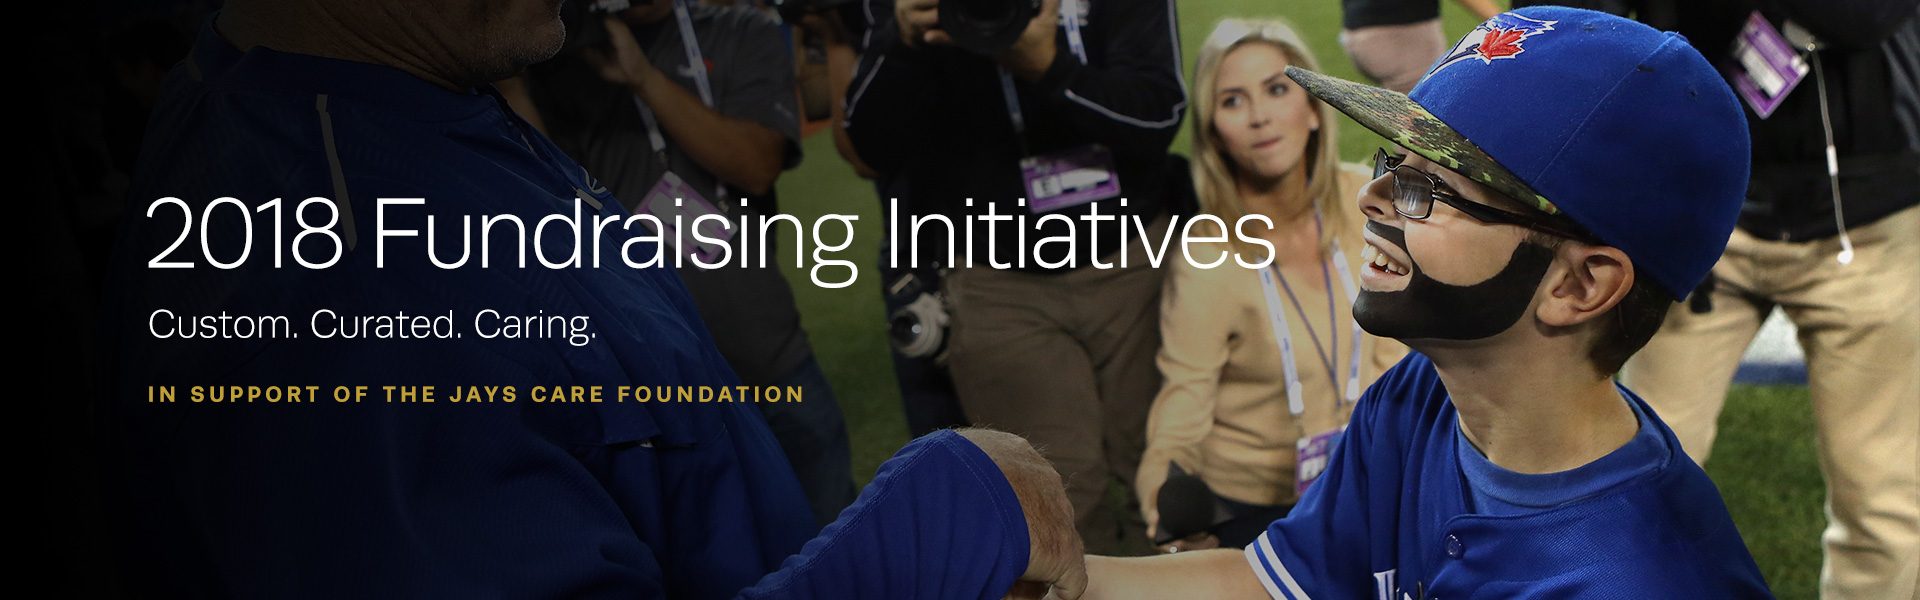 2018 Fundraising Initiatives Jays Care Foundation